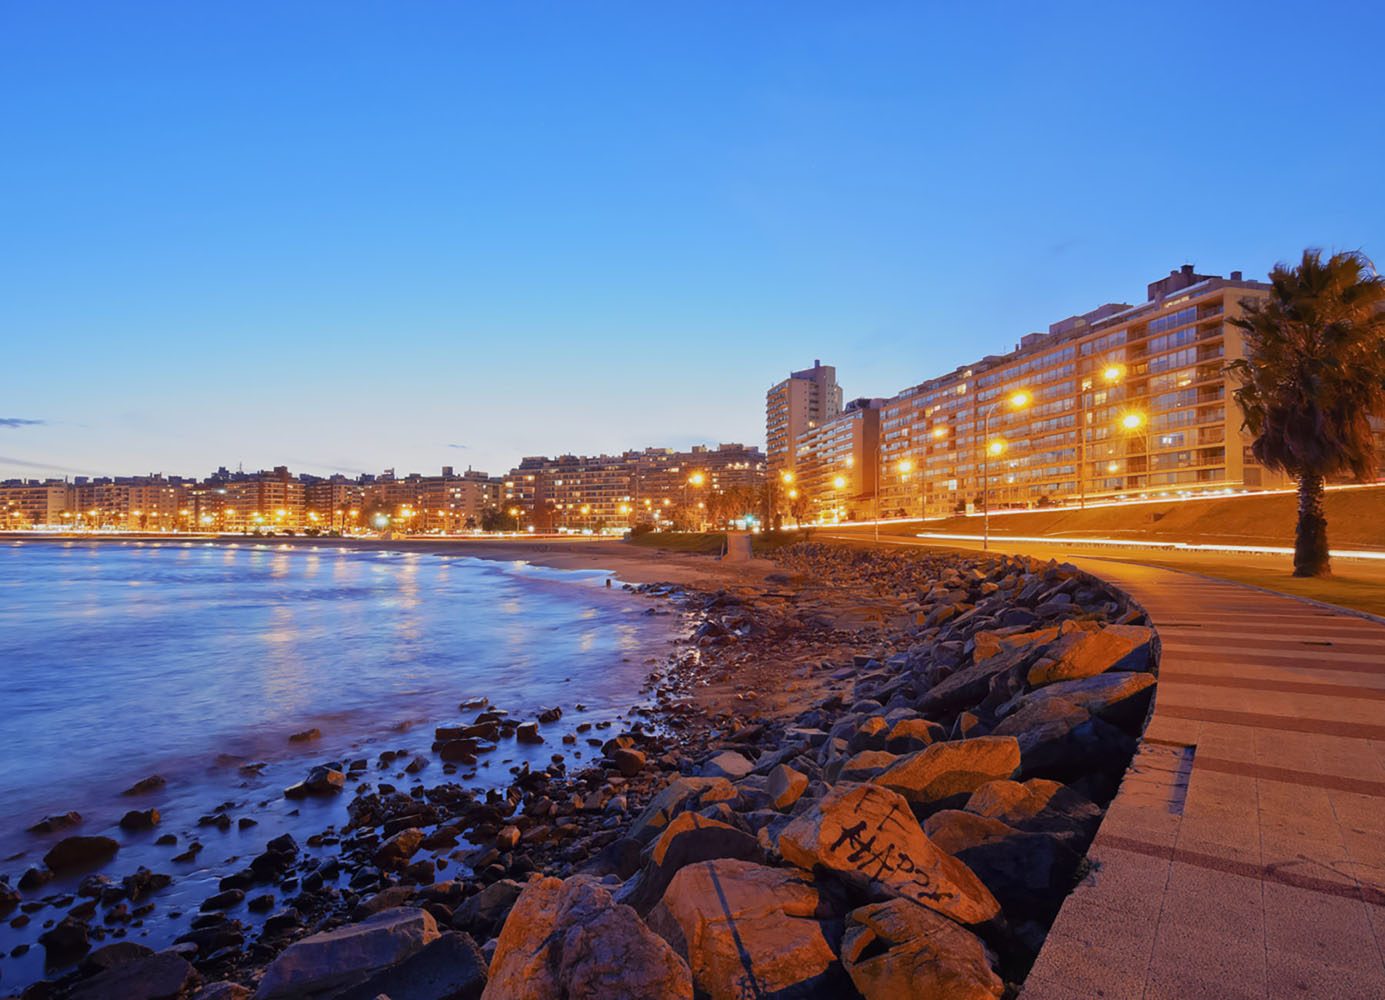 Twilight view of the Pocitos Coast on the River Plate, Montevideo, Uruguay